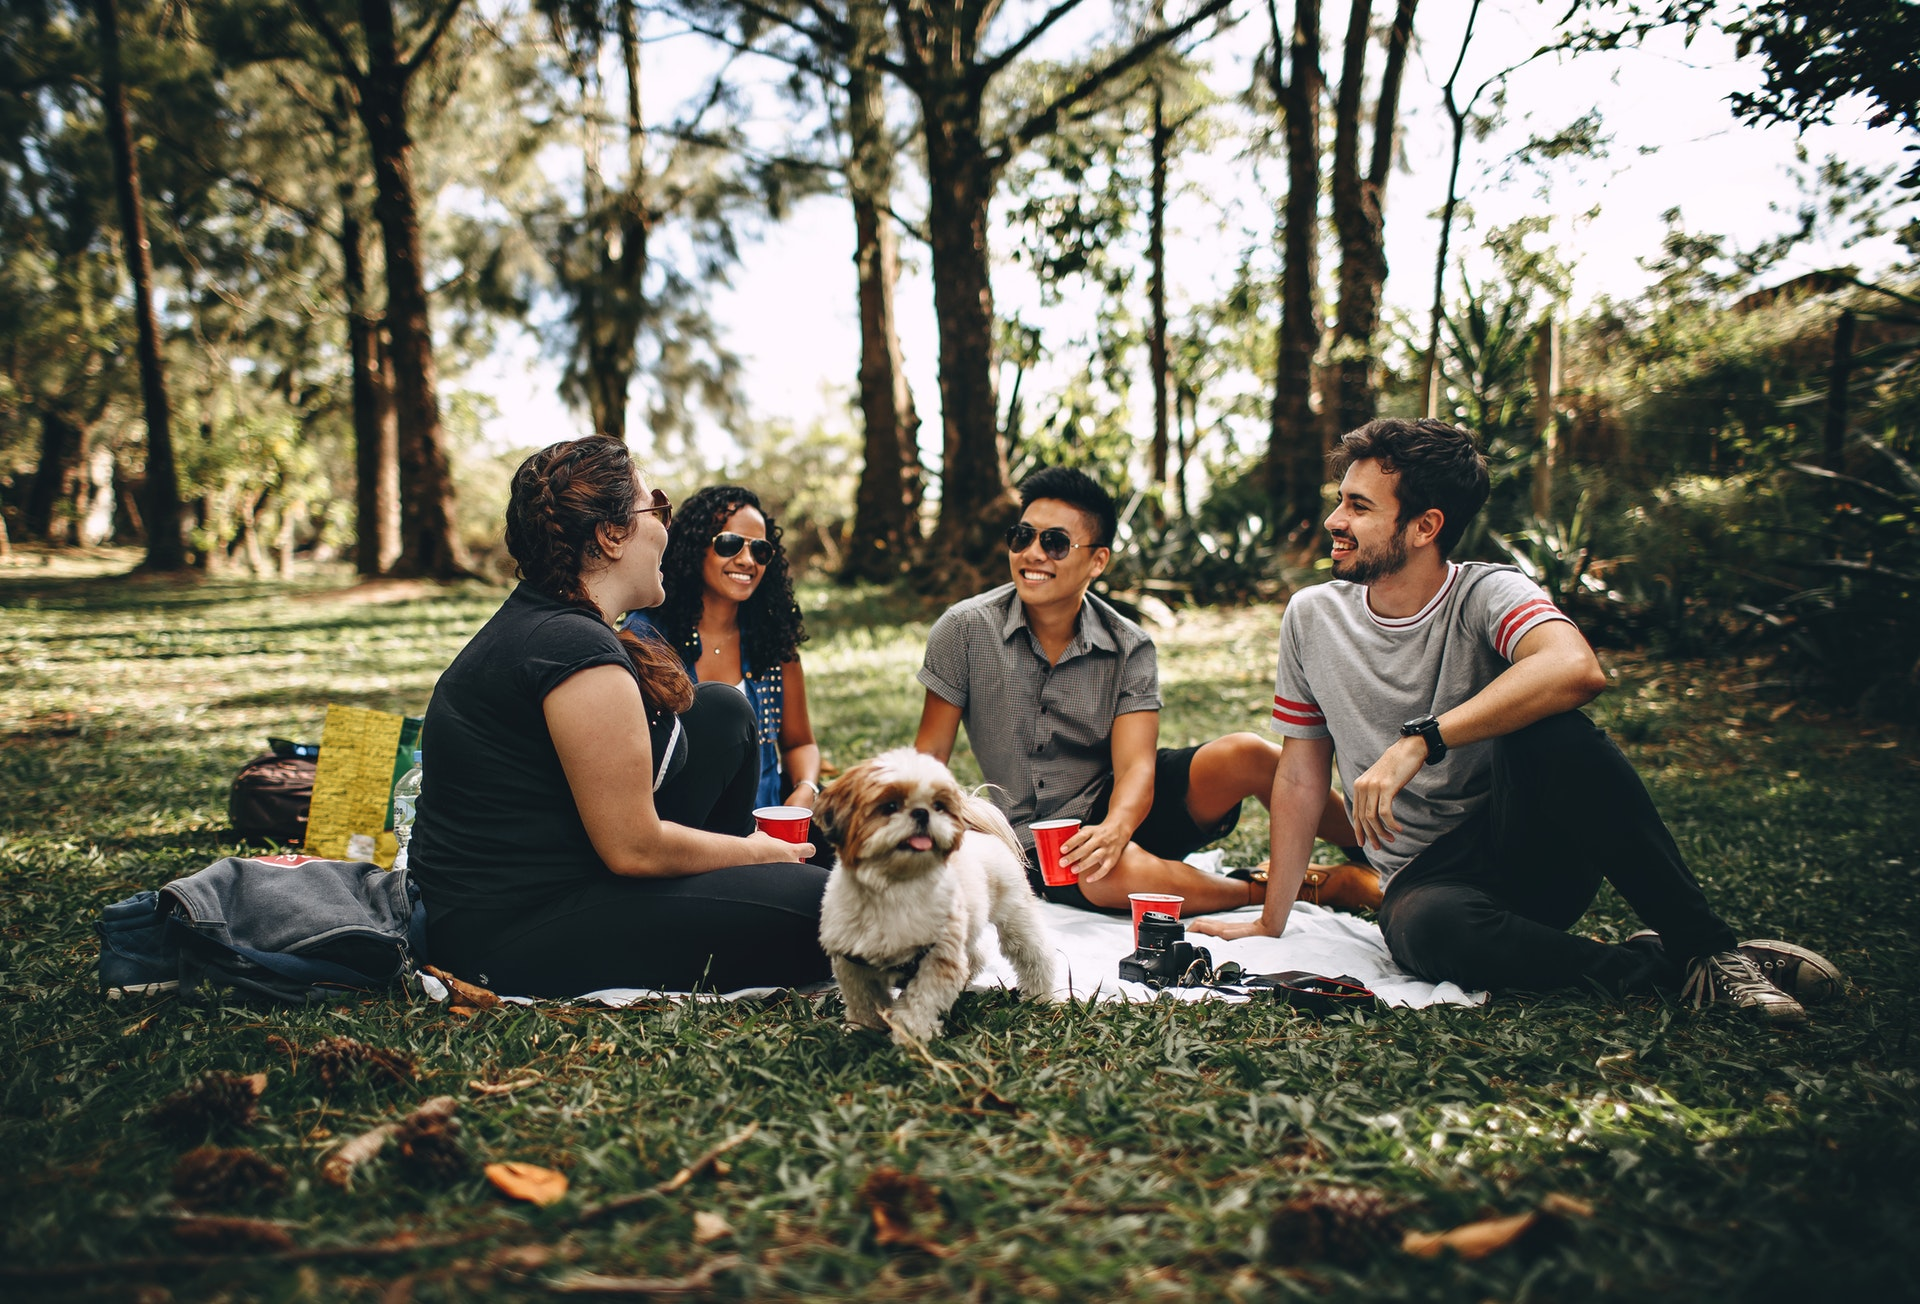 a group of friends on a picnic with a dog